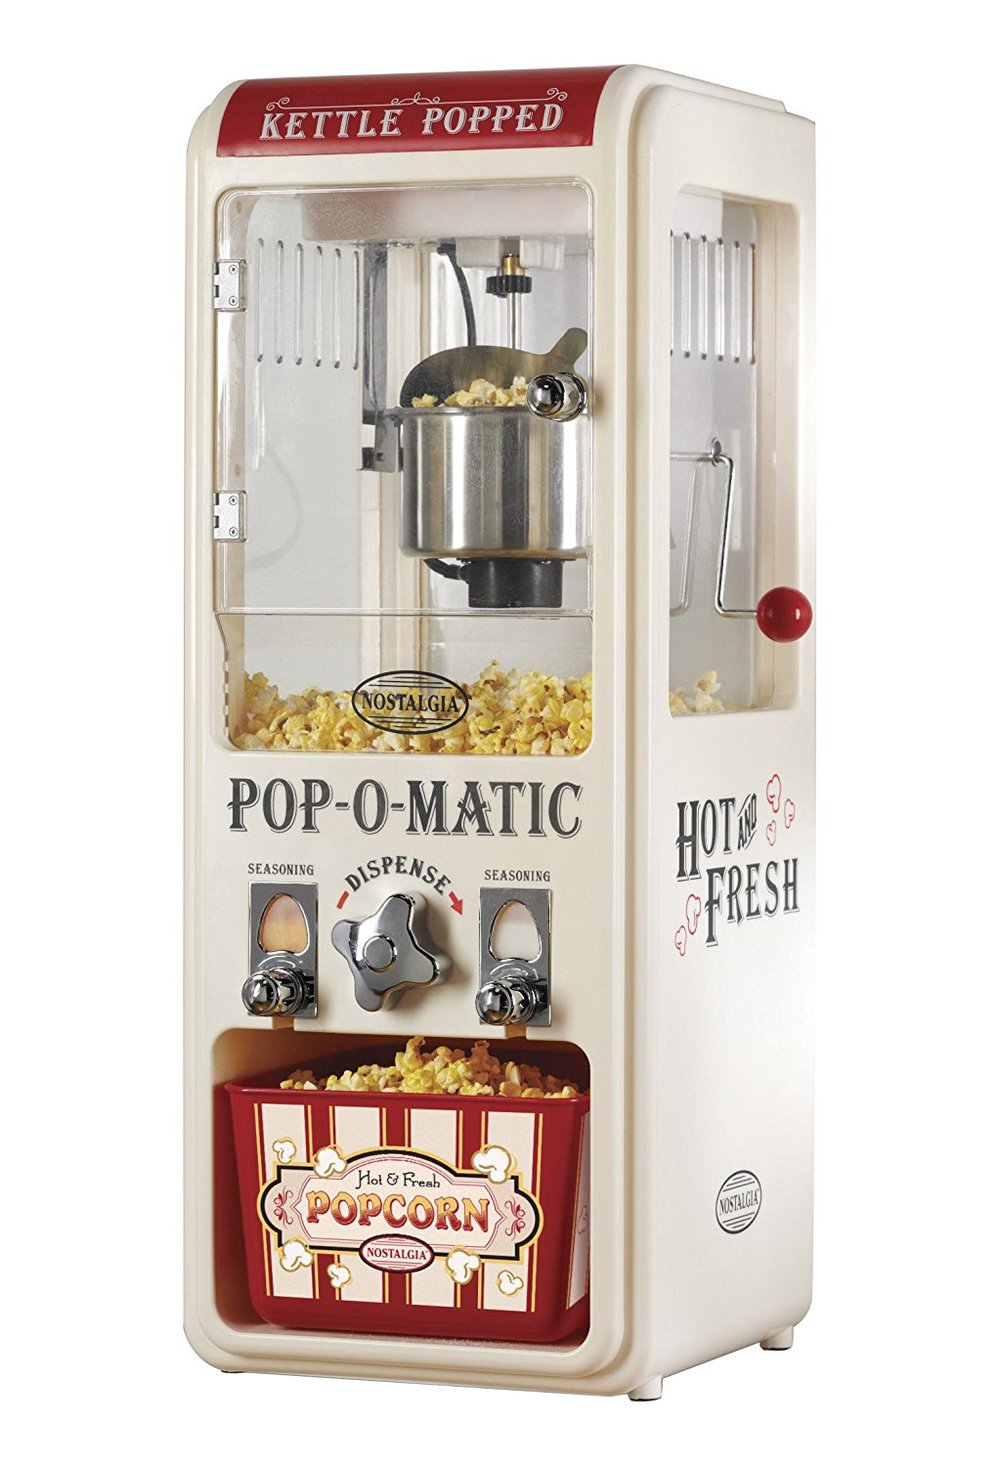 Nostalgia POM250 Pop-o-matic.jpg